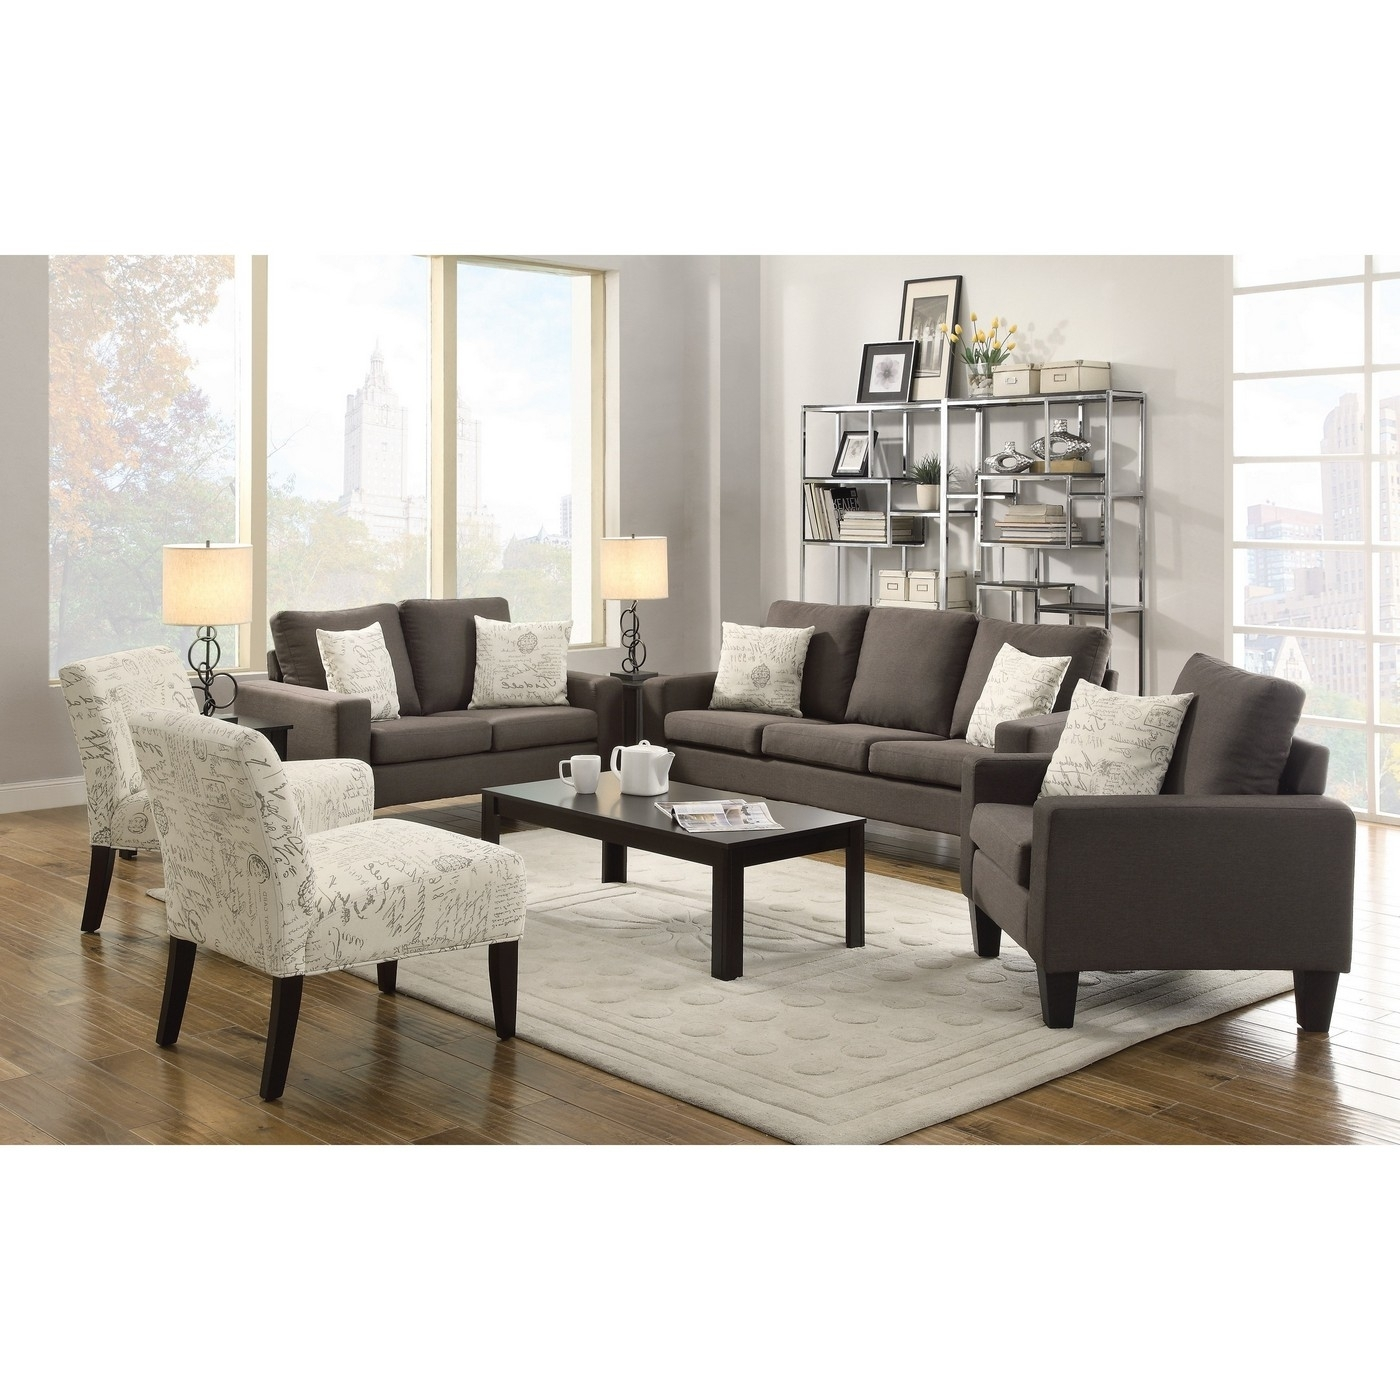 Aarons Sectional Sofas – 28 Images – Aarons Sofas 2 Living Room With Regard To Sectional Sofas At Aarons (View 6 of 10)